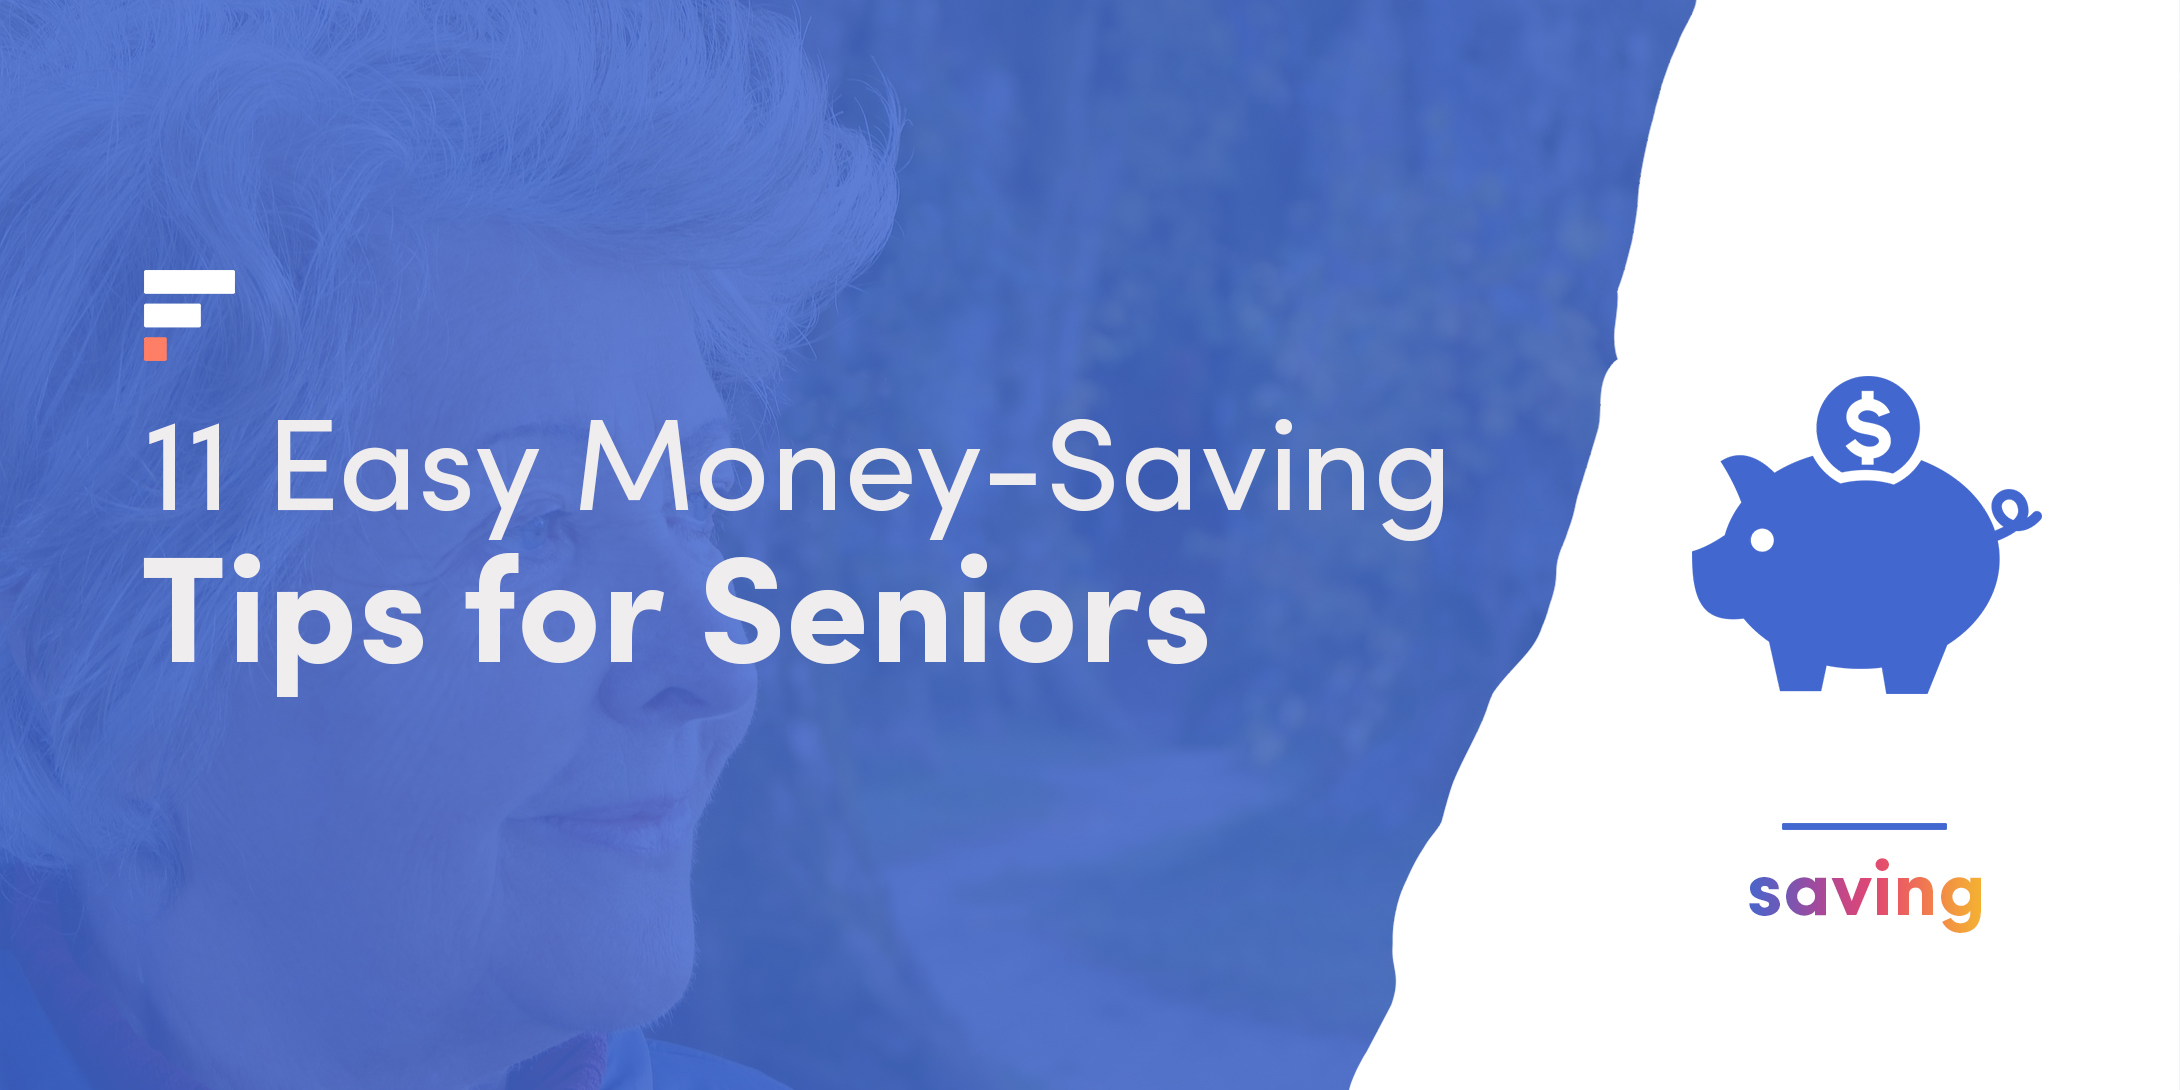 Money-saving tips for seniors